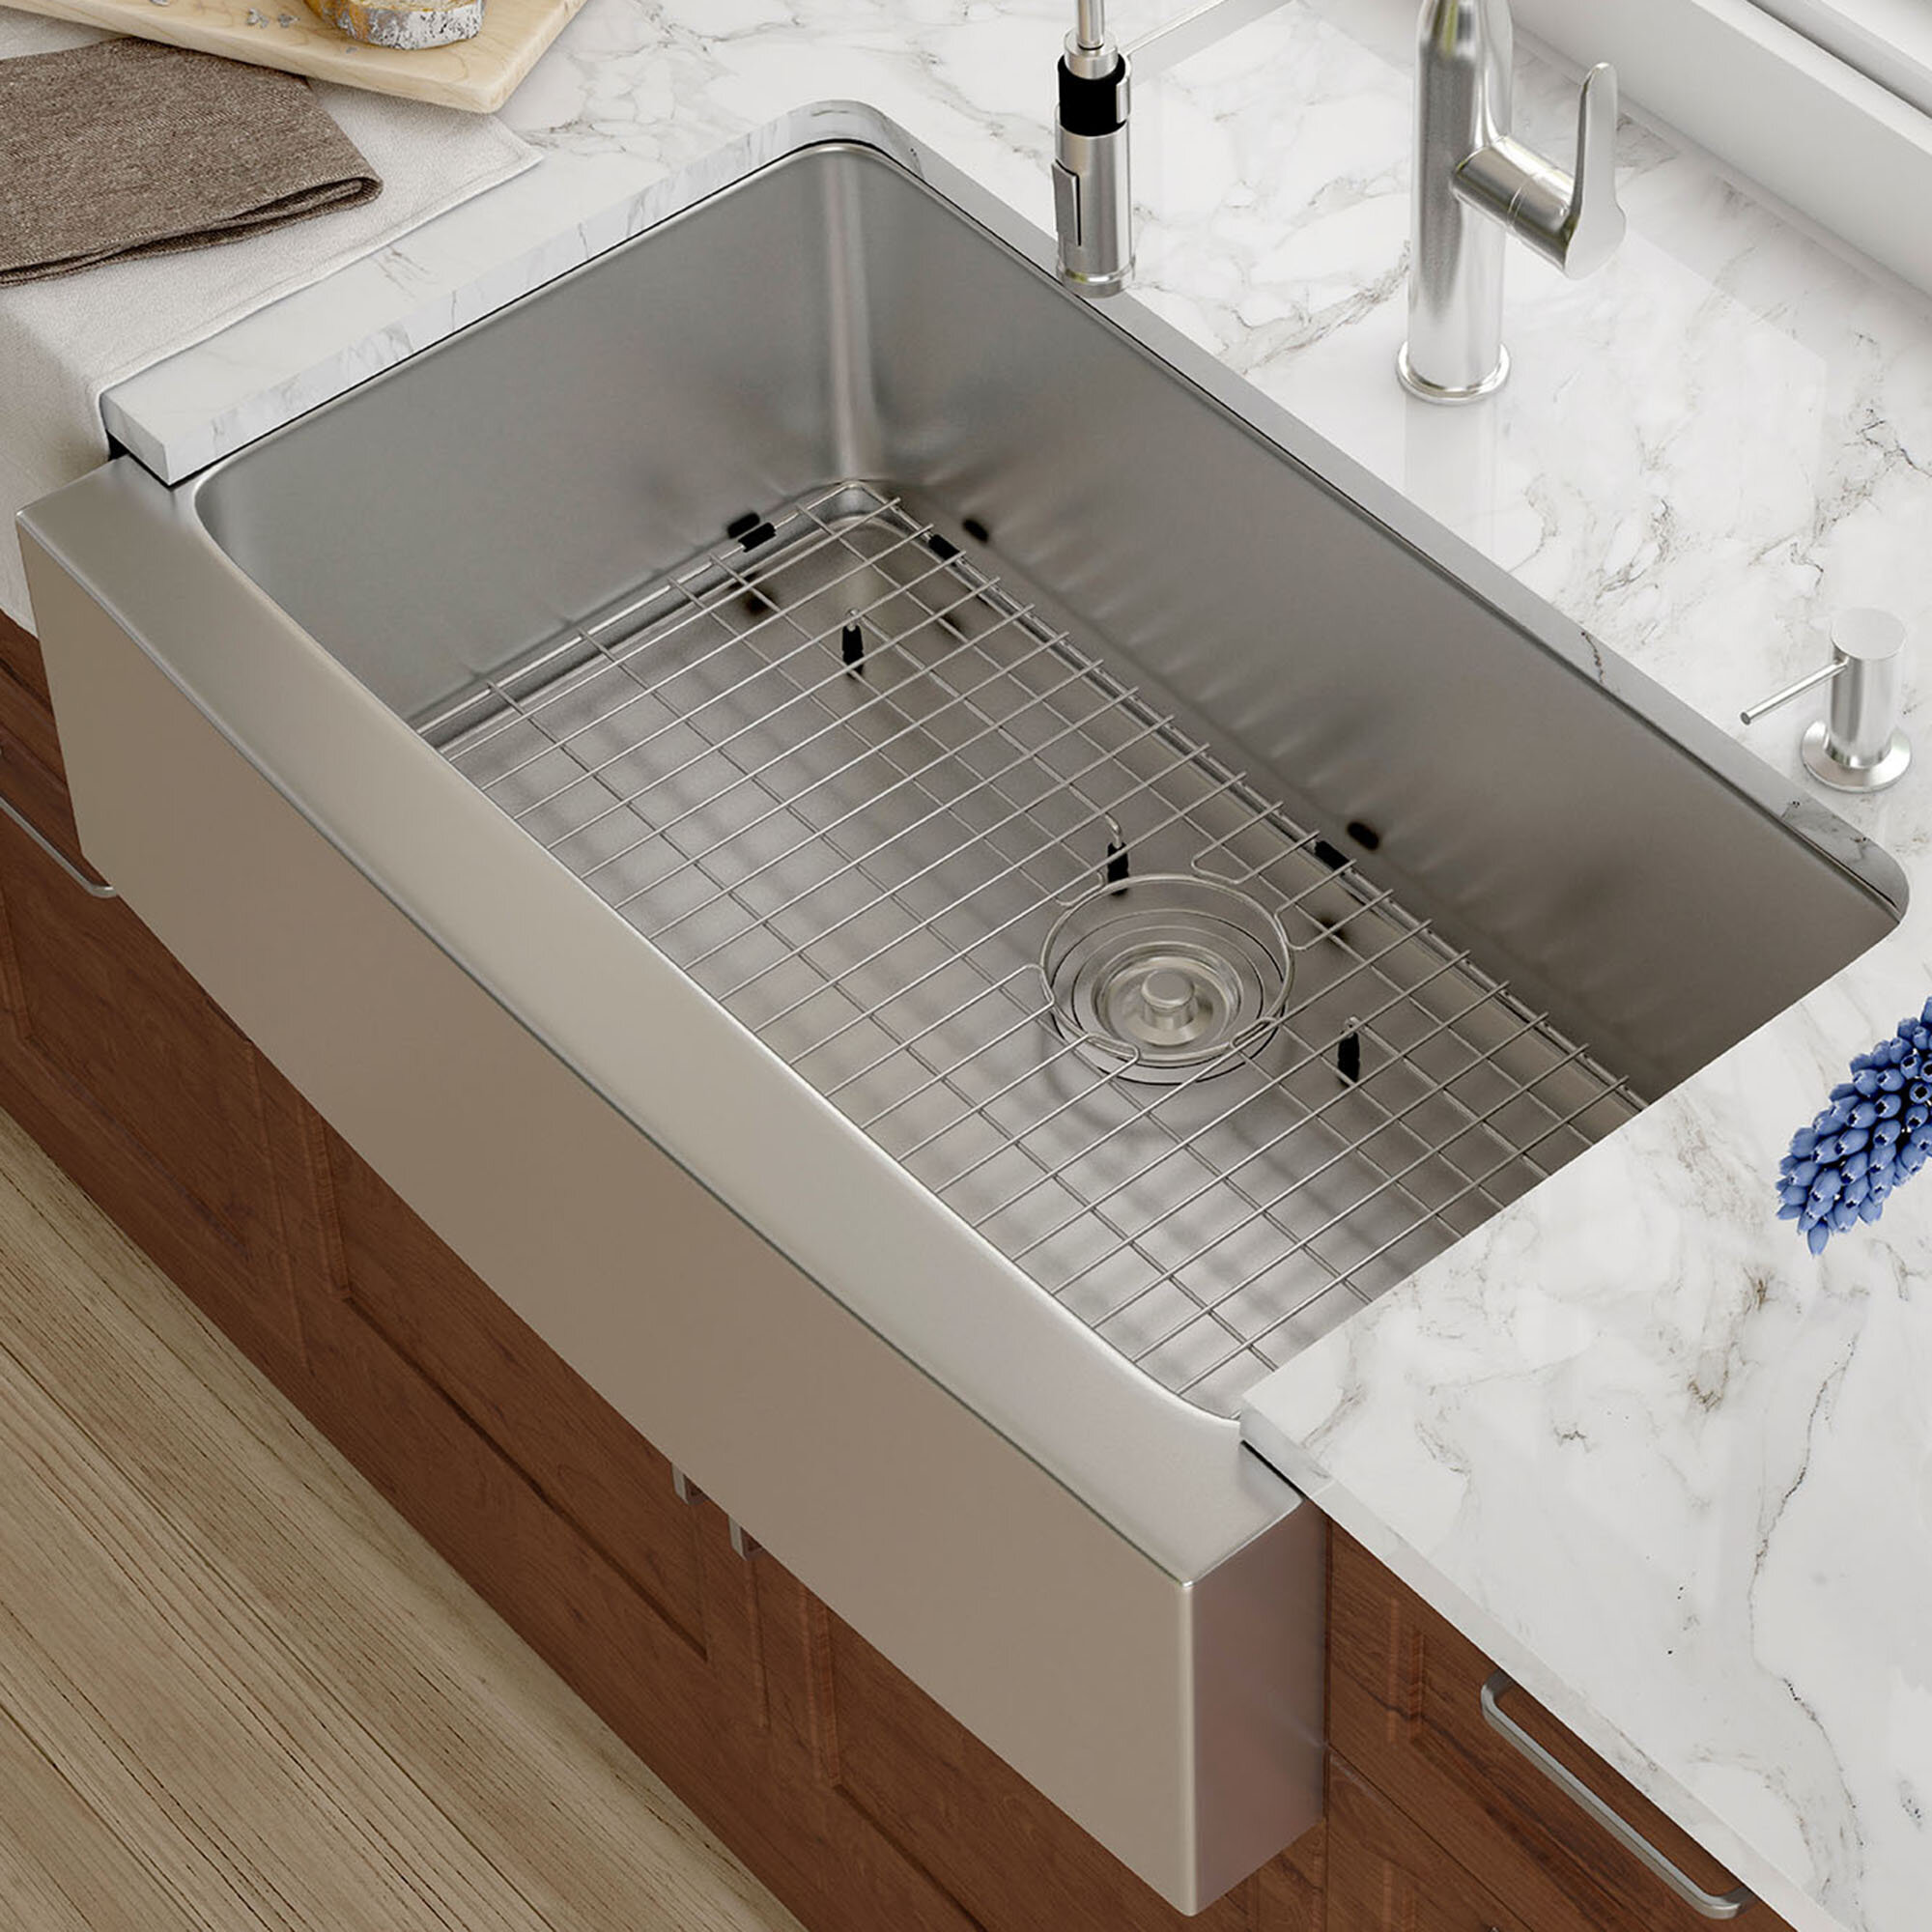 kraus 33   x 21   farmhouse kitchen sink with drain assembly  u0026 reviews   wayfair kraus 33   x 21   farmhouse kitchen sink with drain assembly      rh   wayfair com